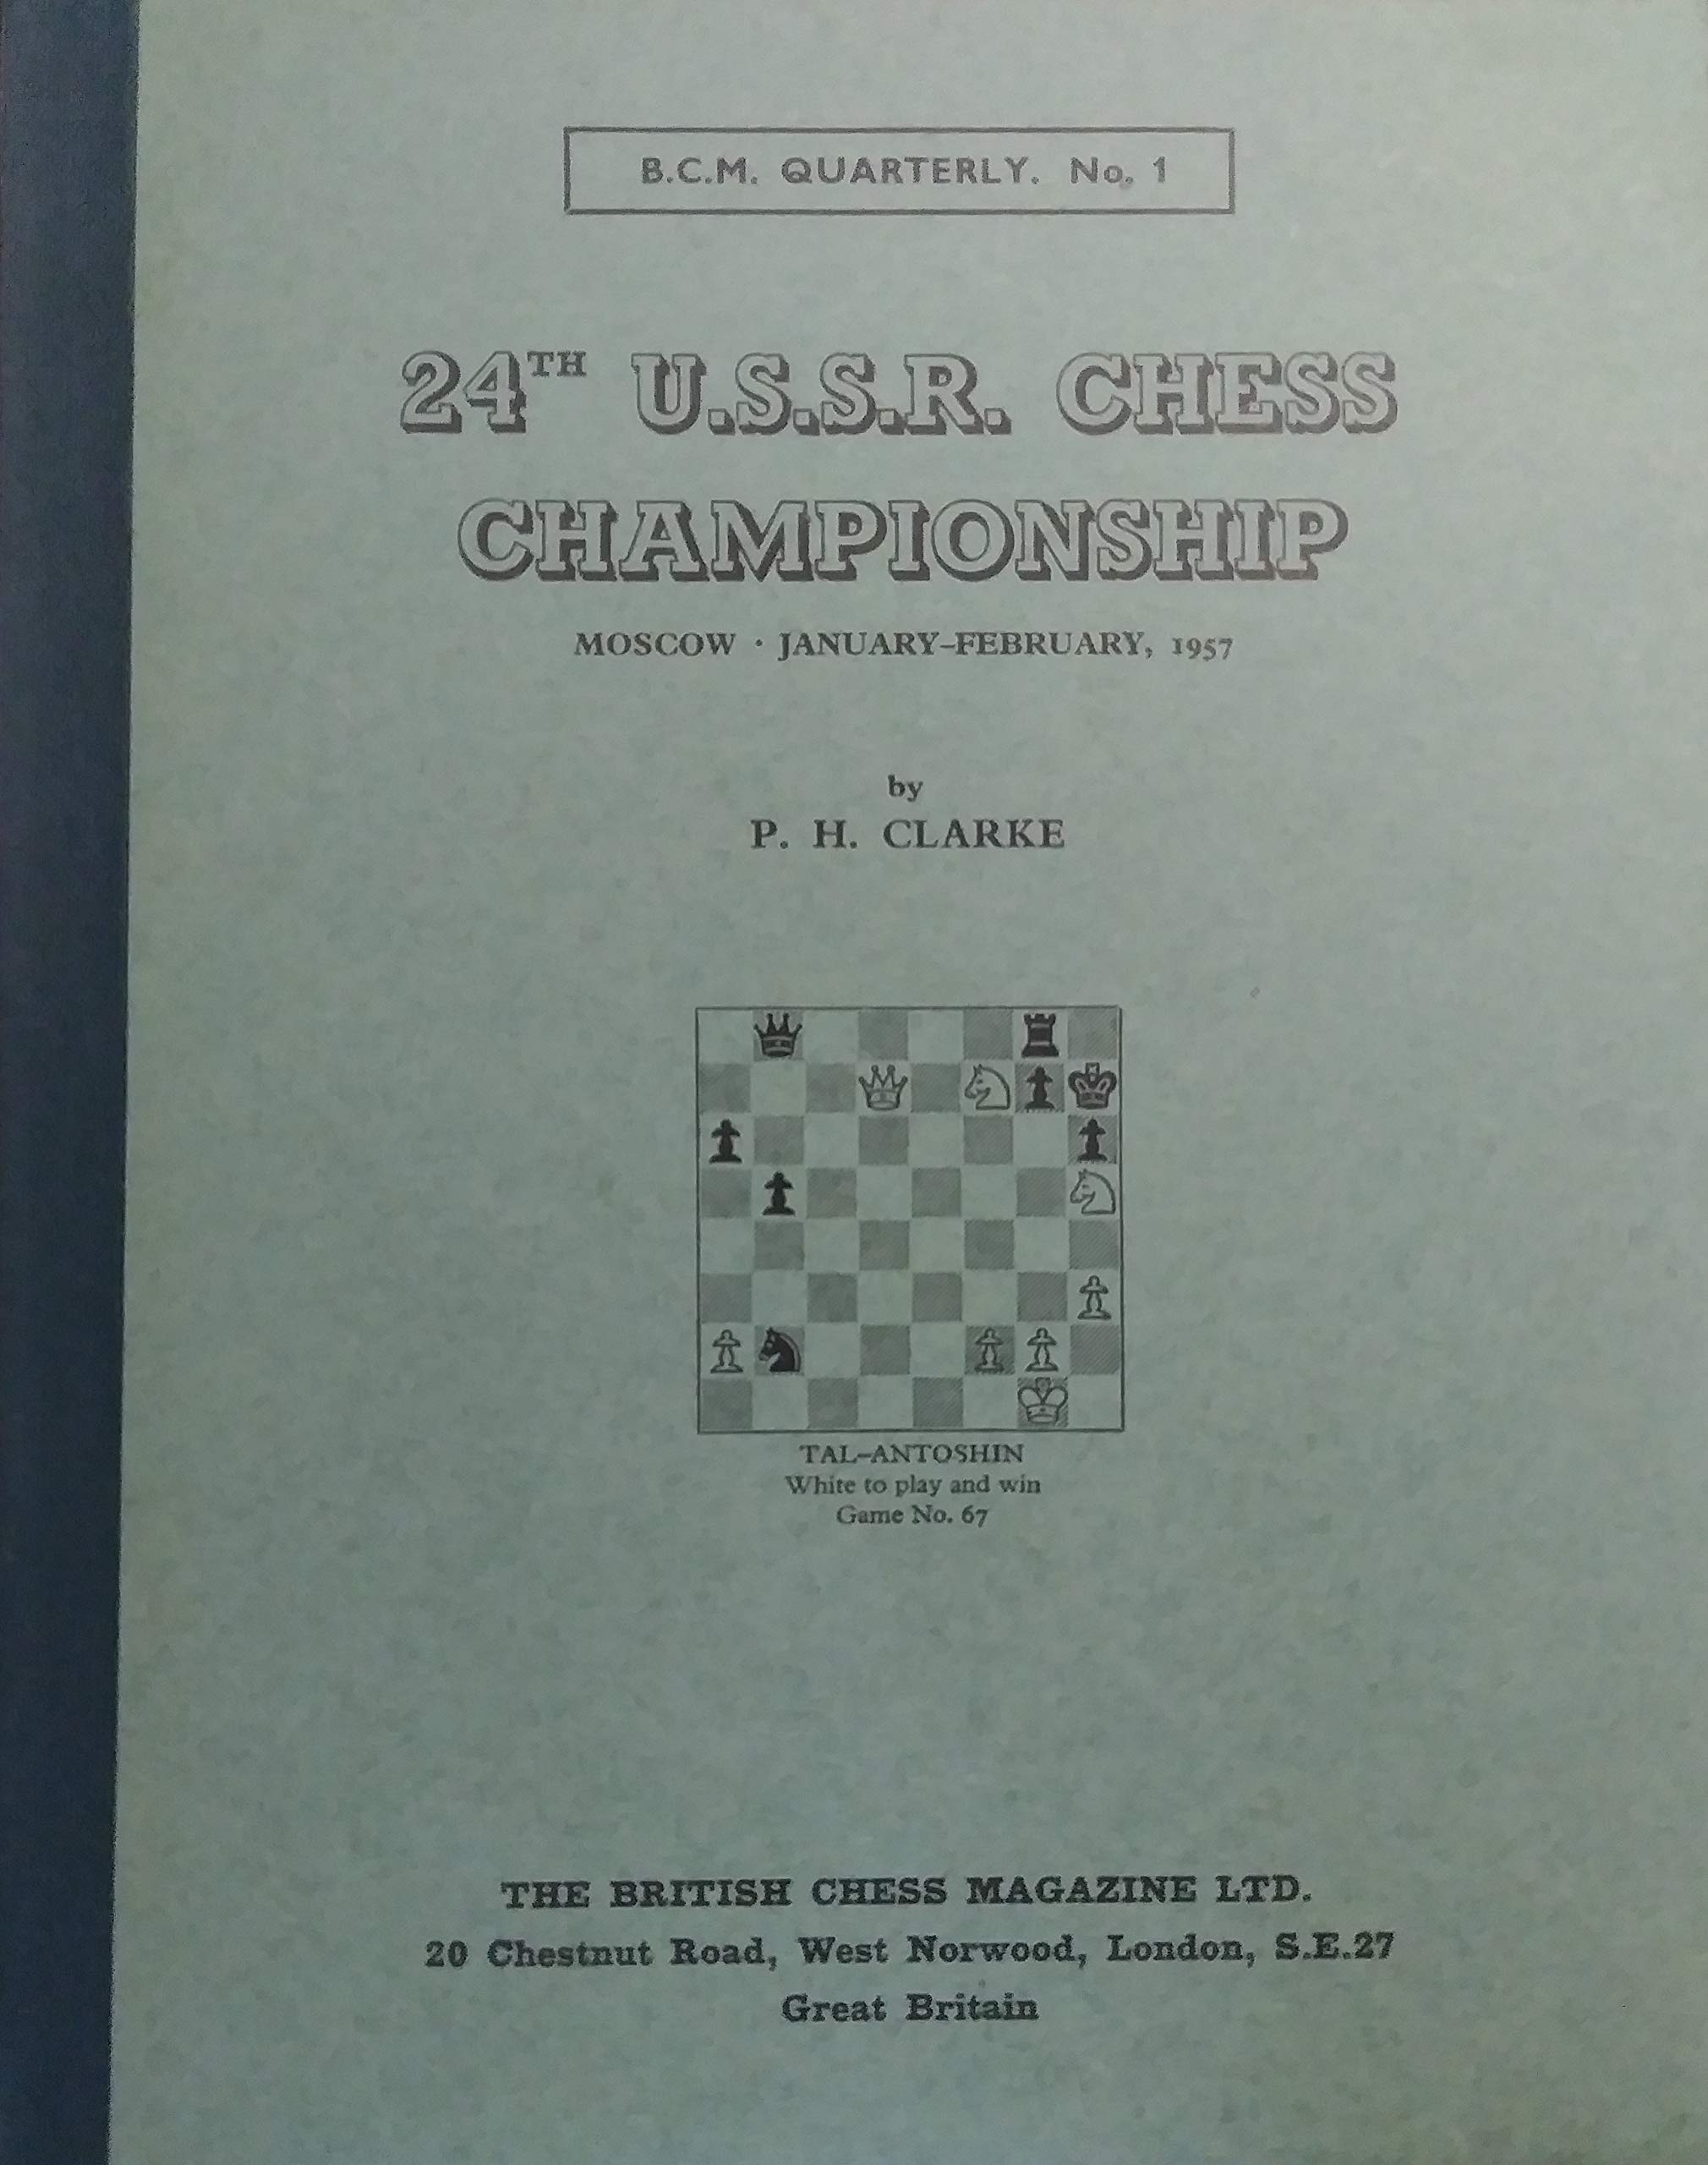 24th USSR Chess Championships, PH Clarke, British Chess Magazine, 1959